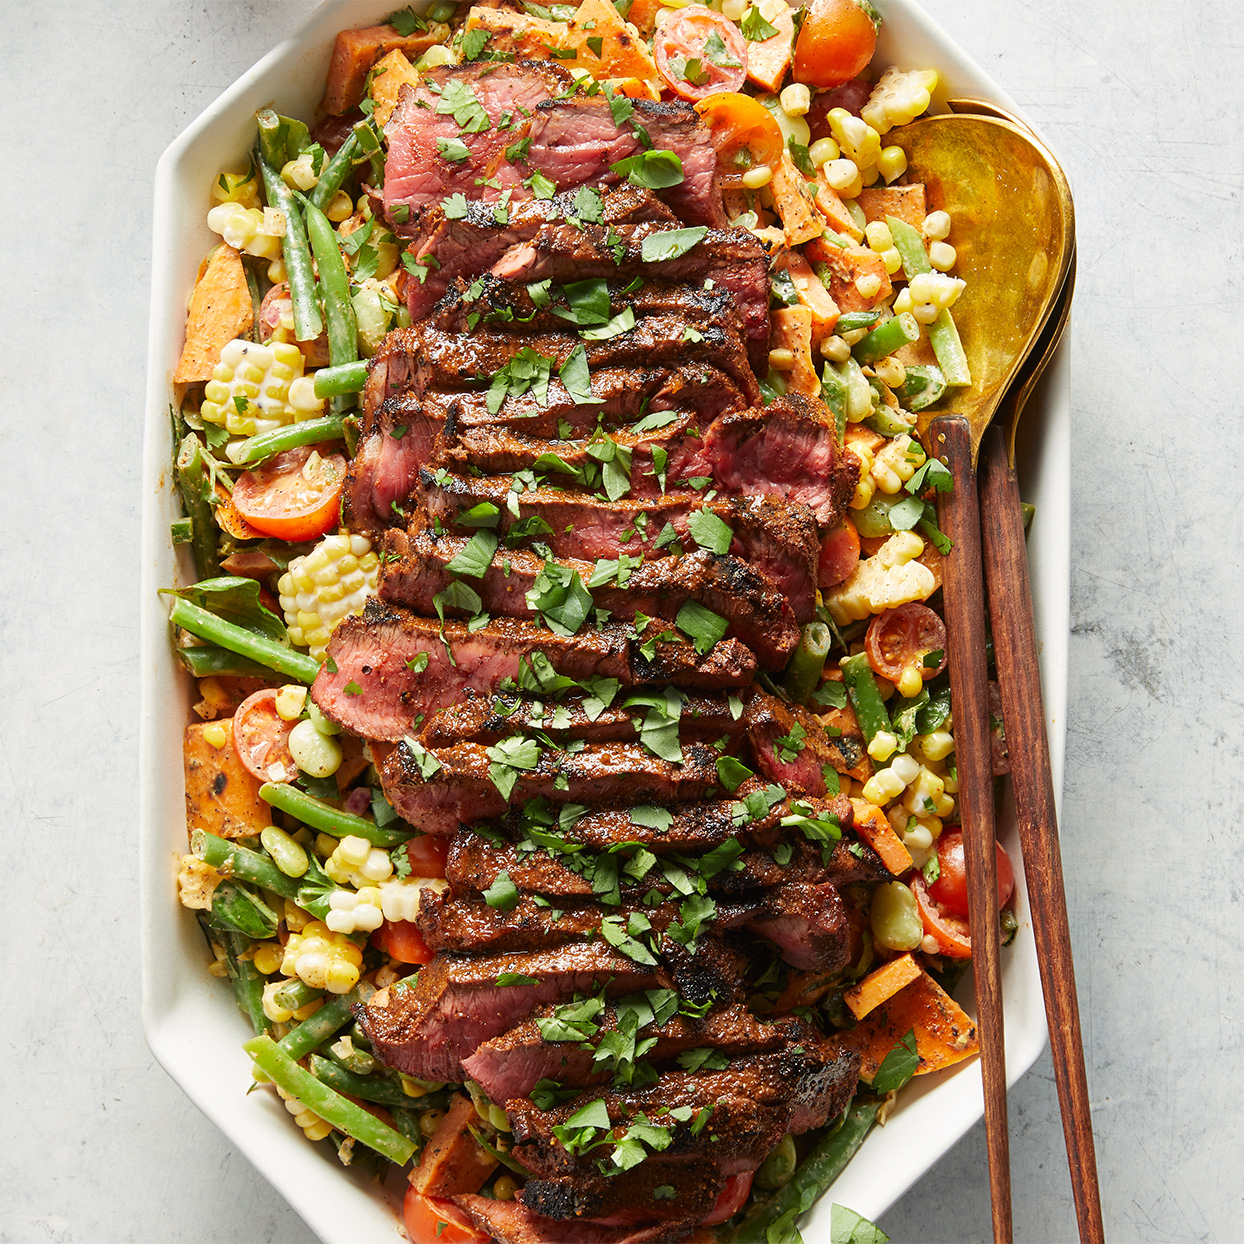 A summer salad through and through! Grilled sweet potatoes and grilled sirloin steak add just enough smokiness without overpowering all of the fresh flavors, while a creamy lime dressing brings everything together. Source: Diabetic Living Magazine, Summer 2020